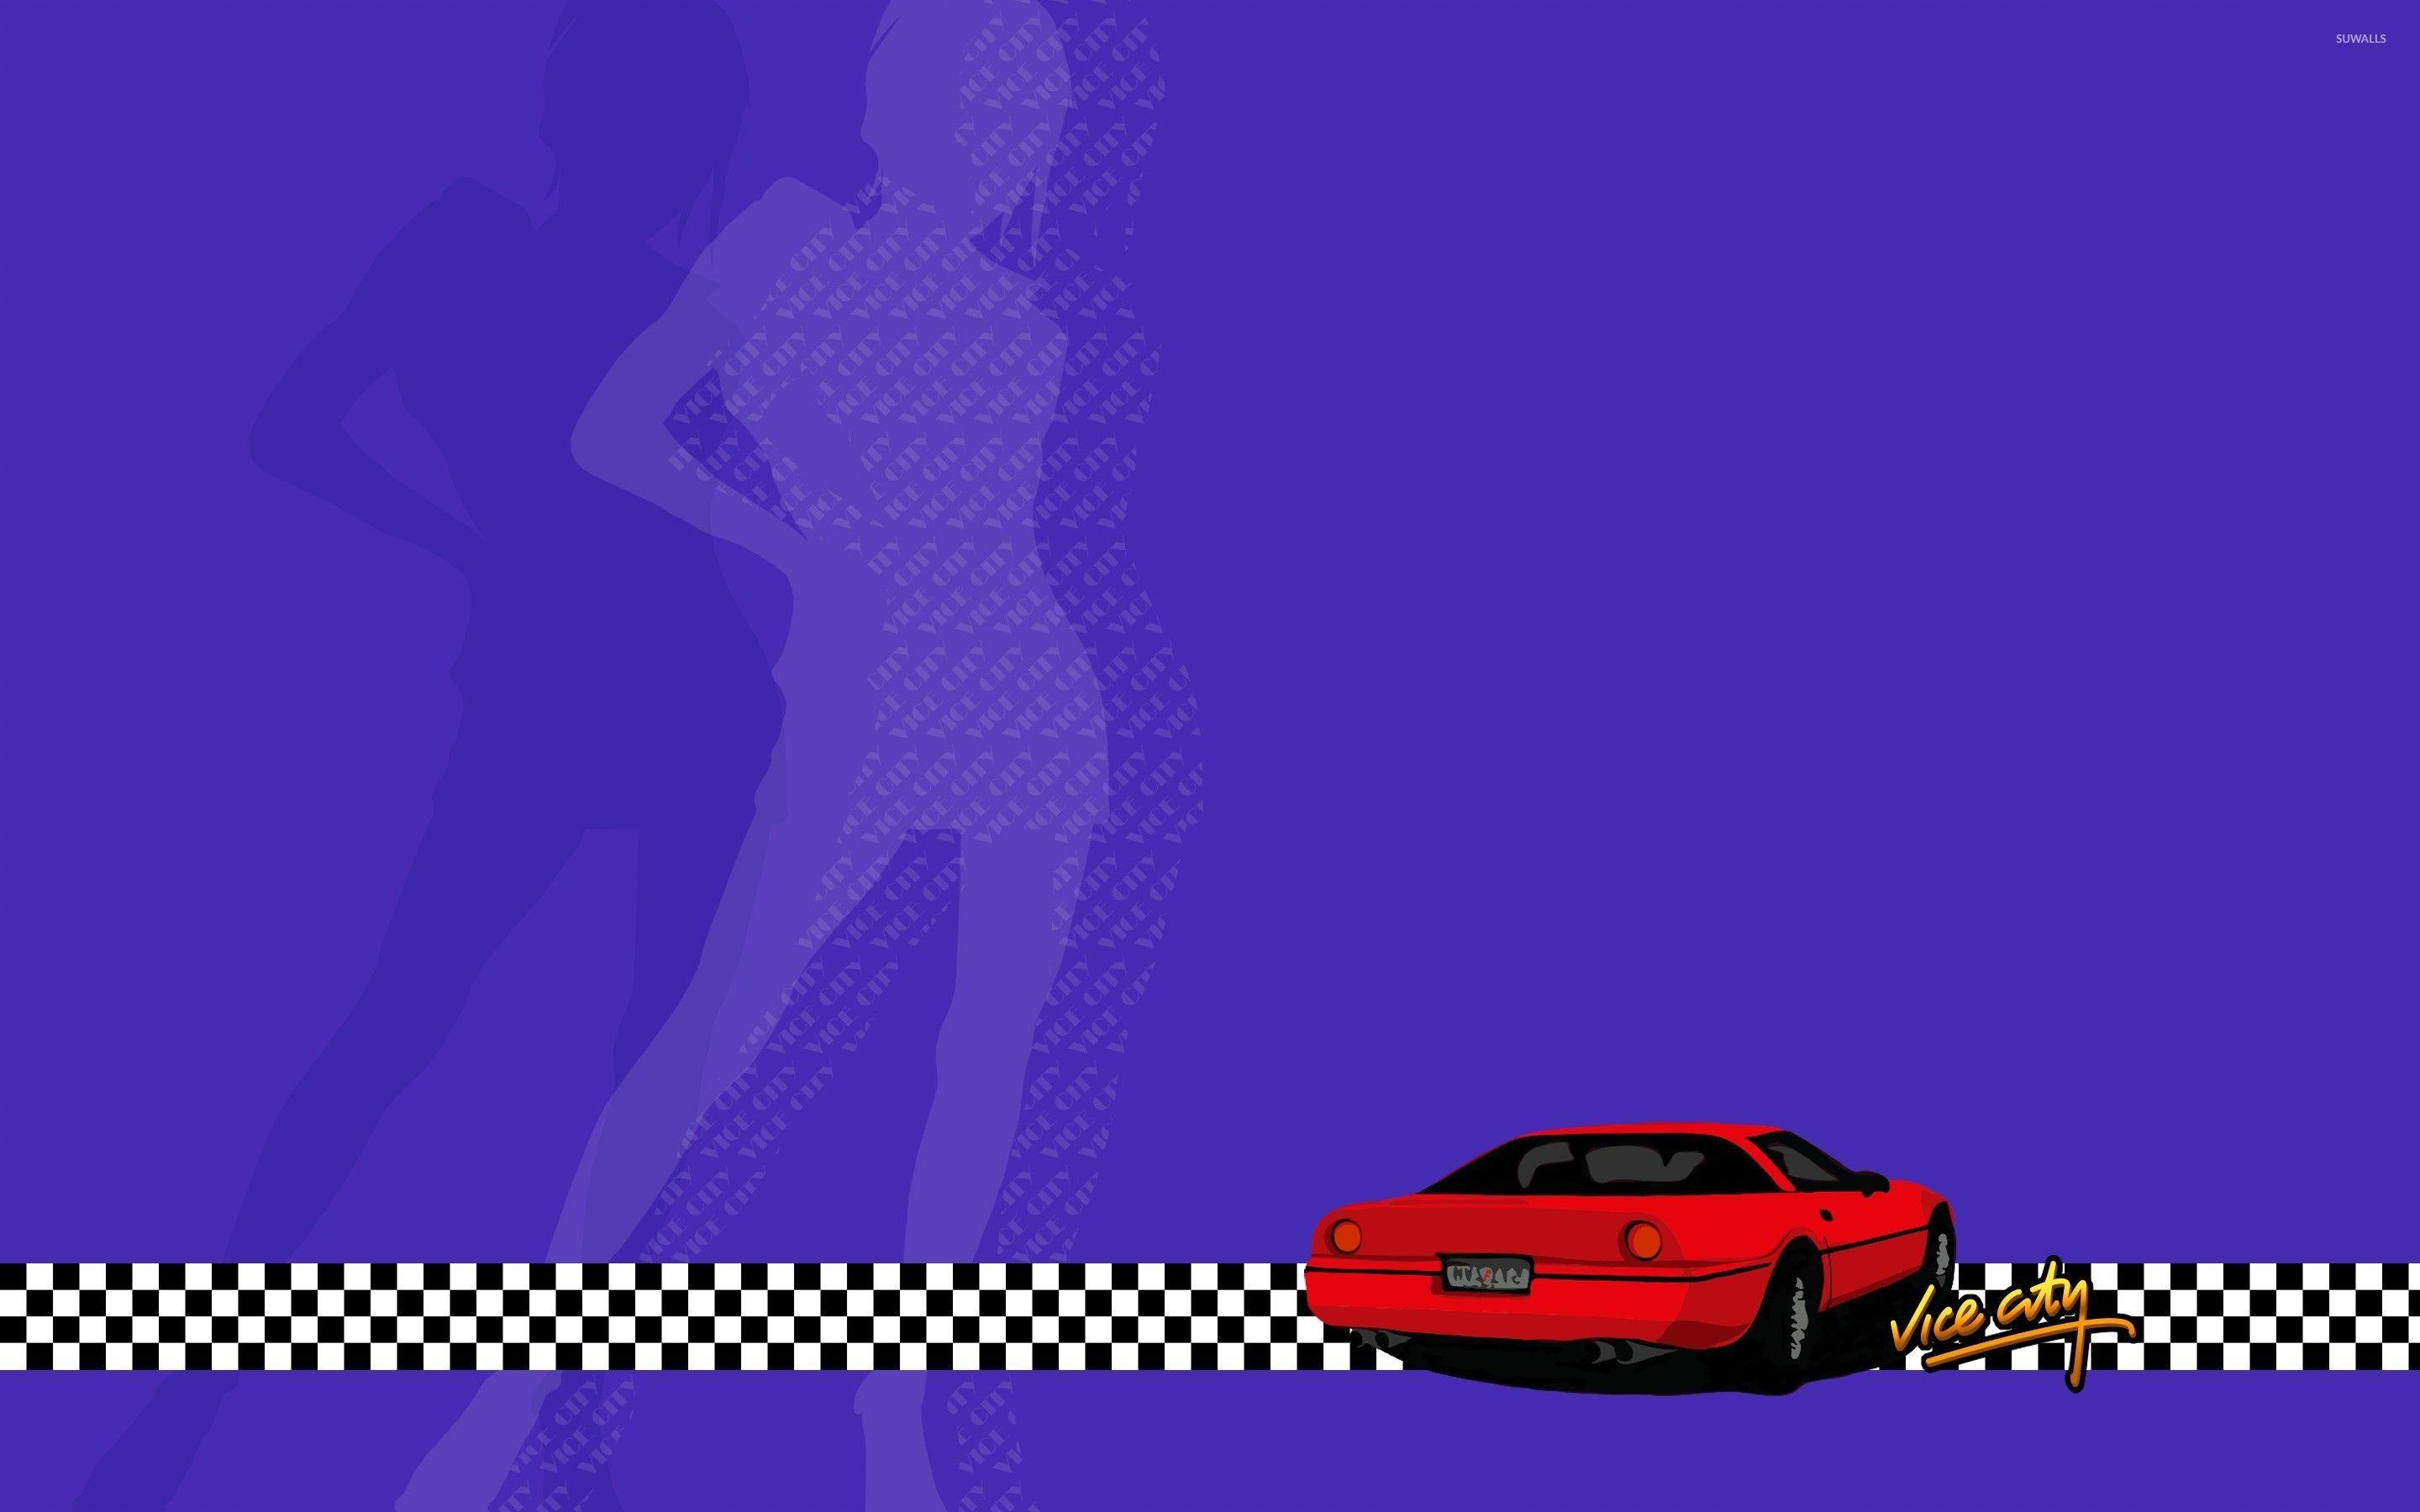 Red car in Grand Theft Auto: Vice City wallpaper - Game wallpapers ...